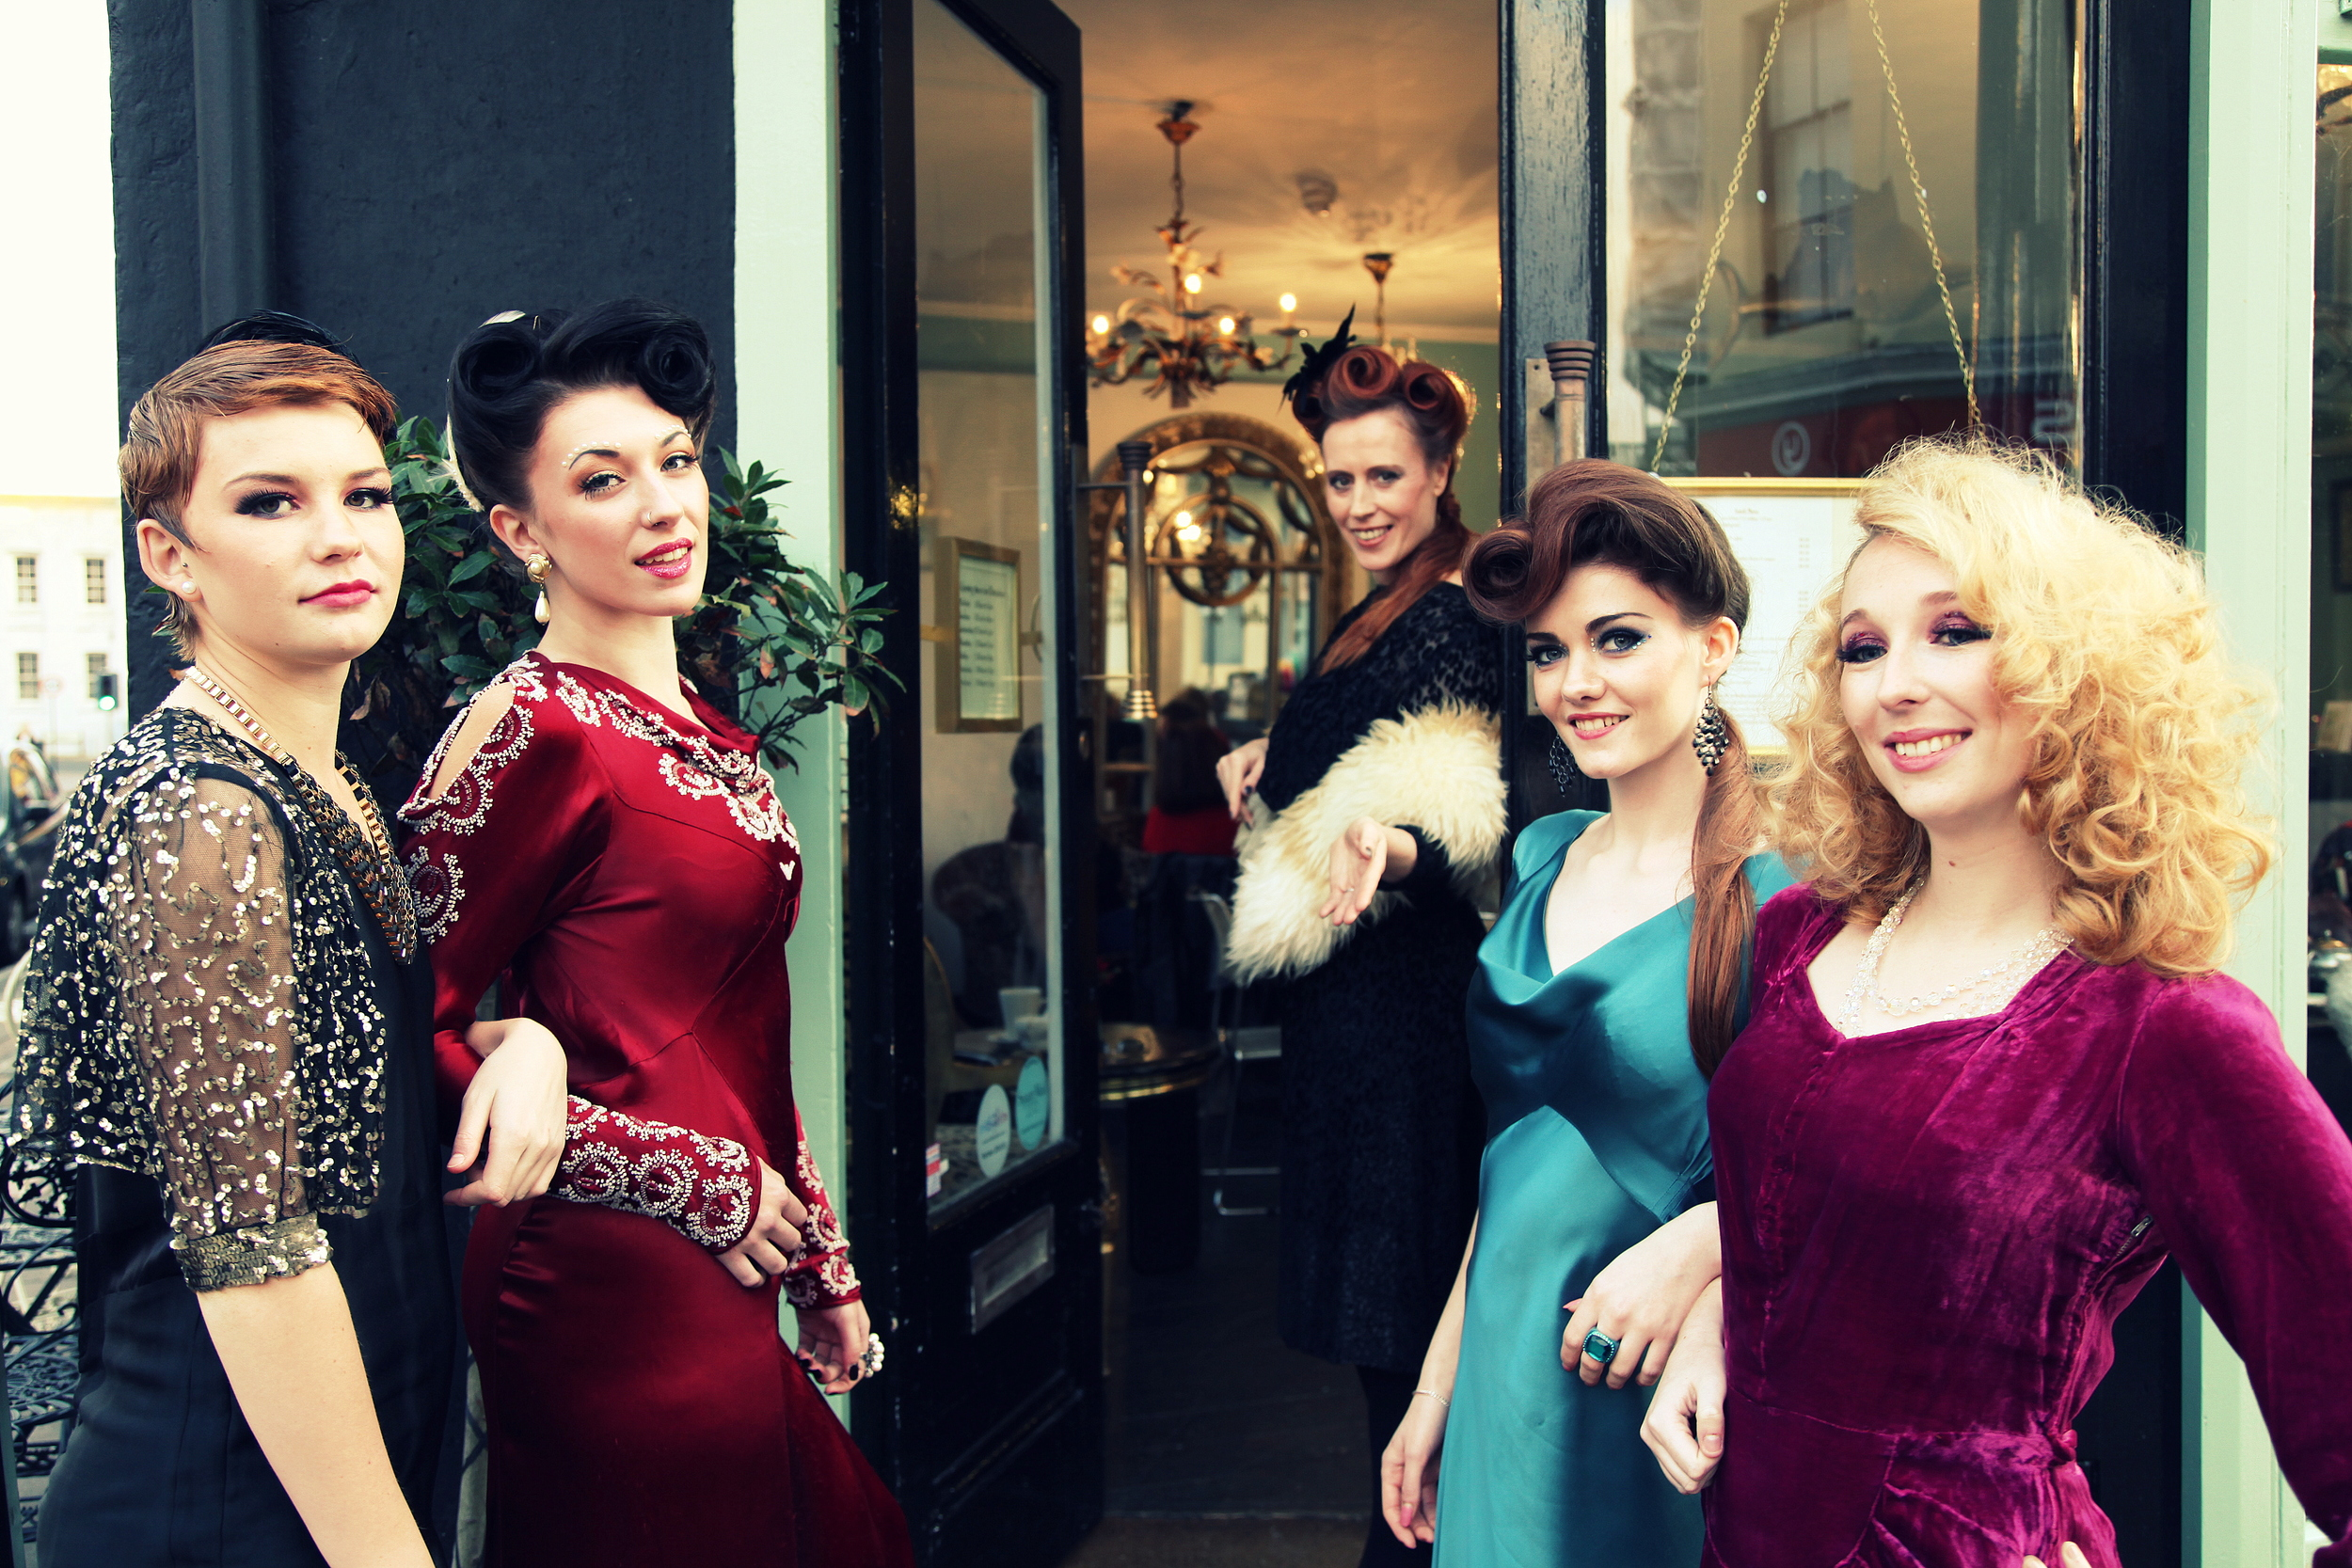 Metrodeco Cafe Brighton - St. James Street - Vintage Photo Shoot